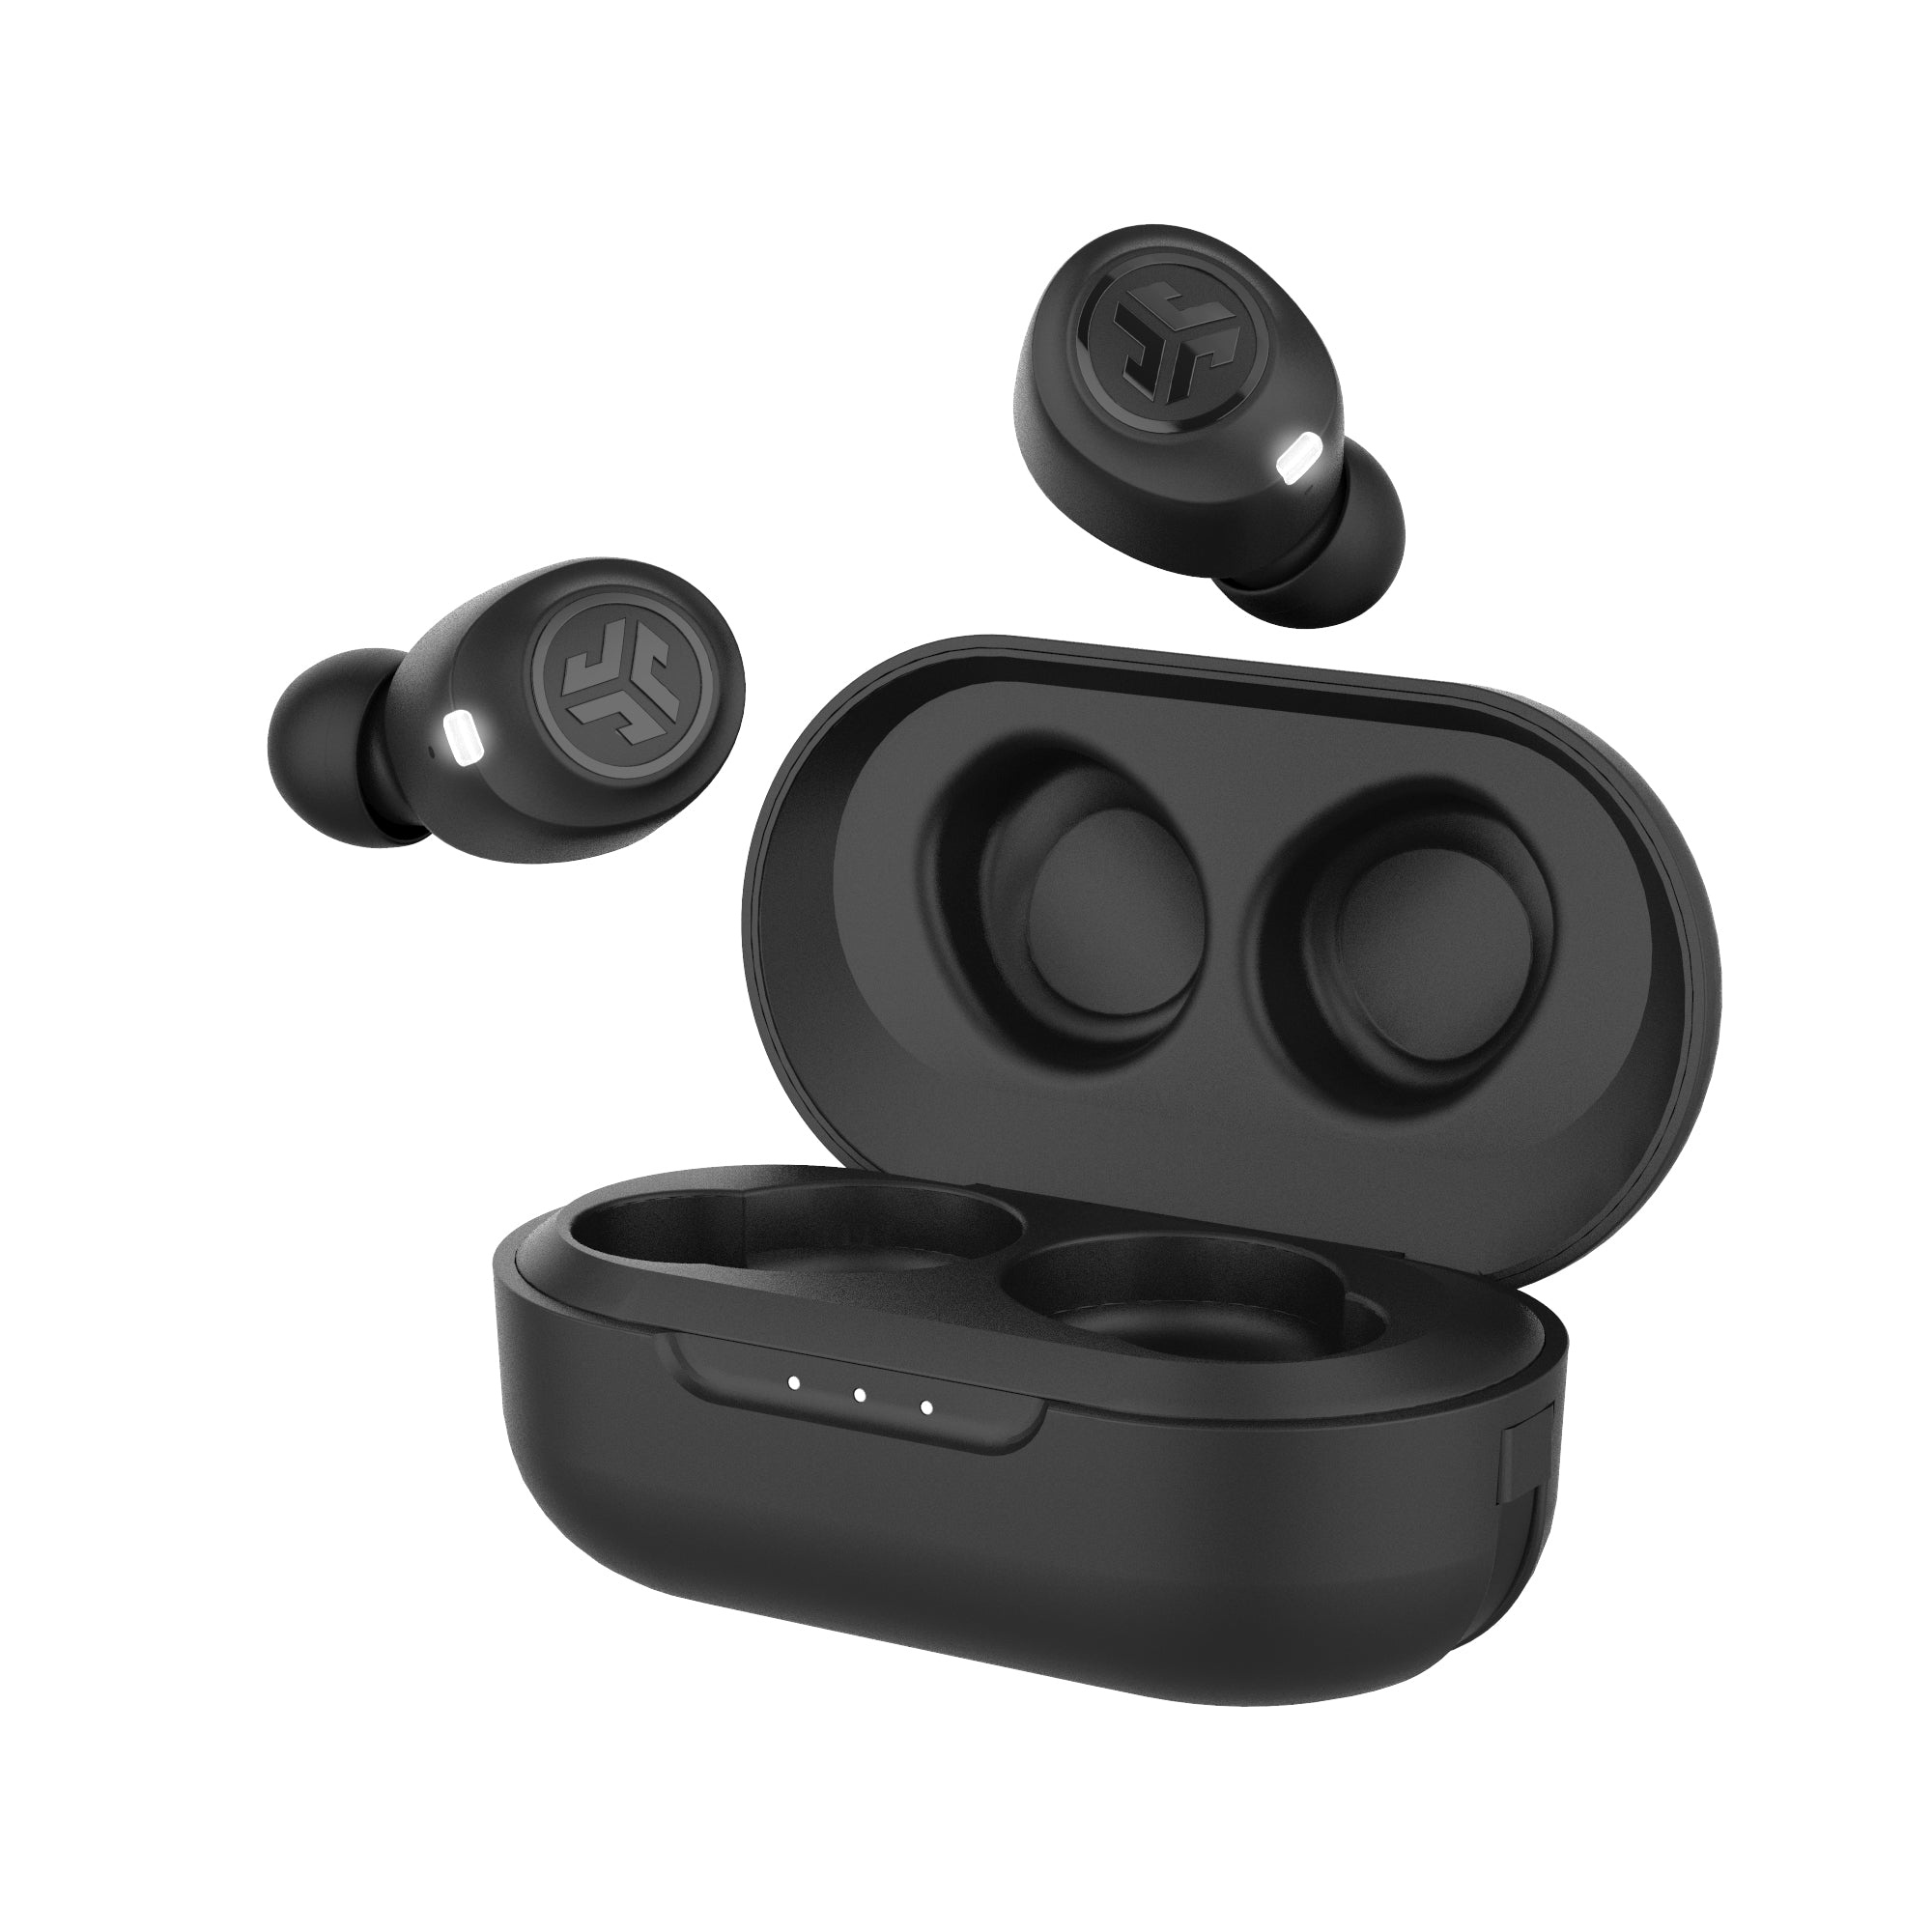 Jbuds Air True Wireless Earbuds Jlab Audio